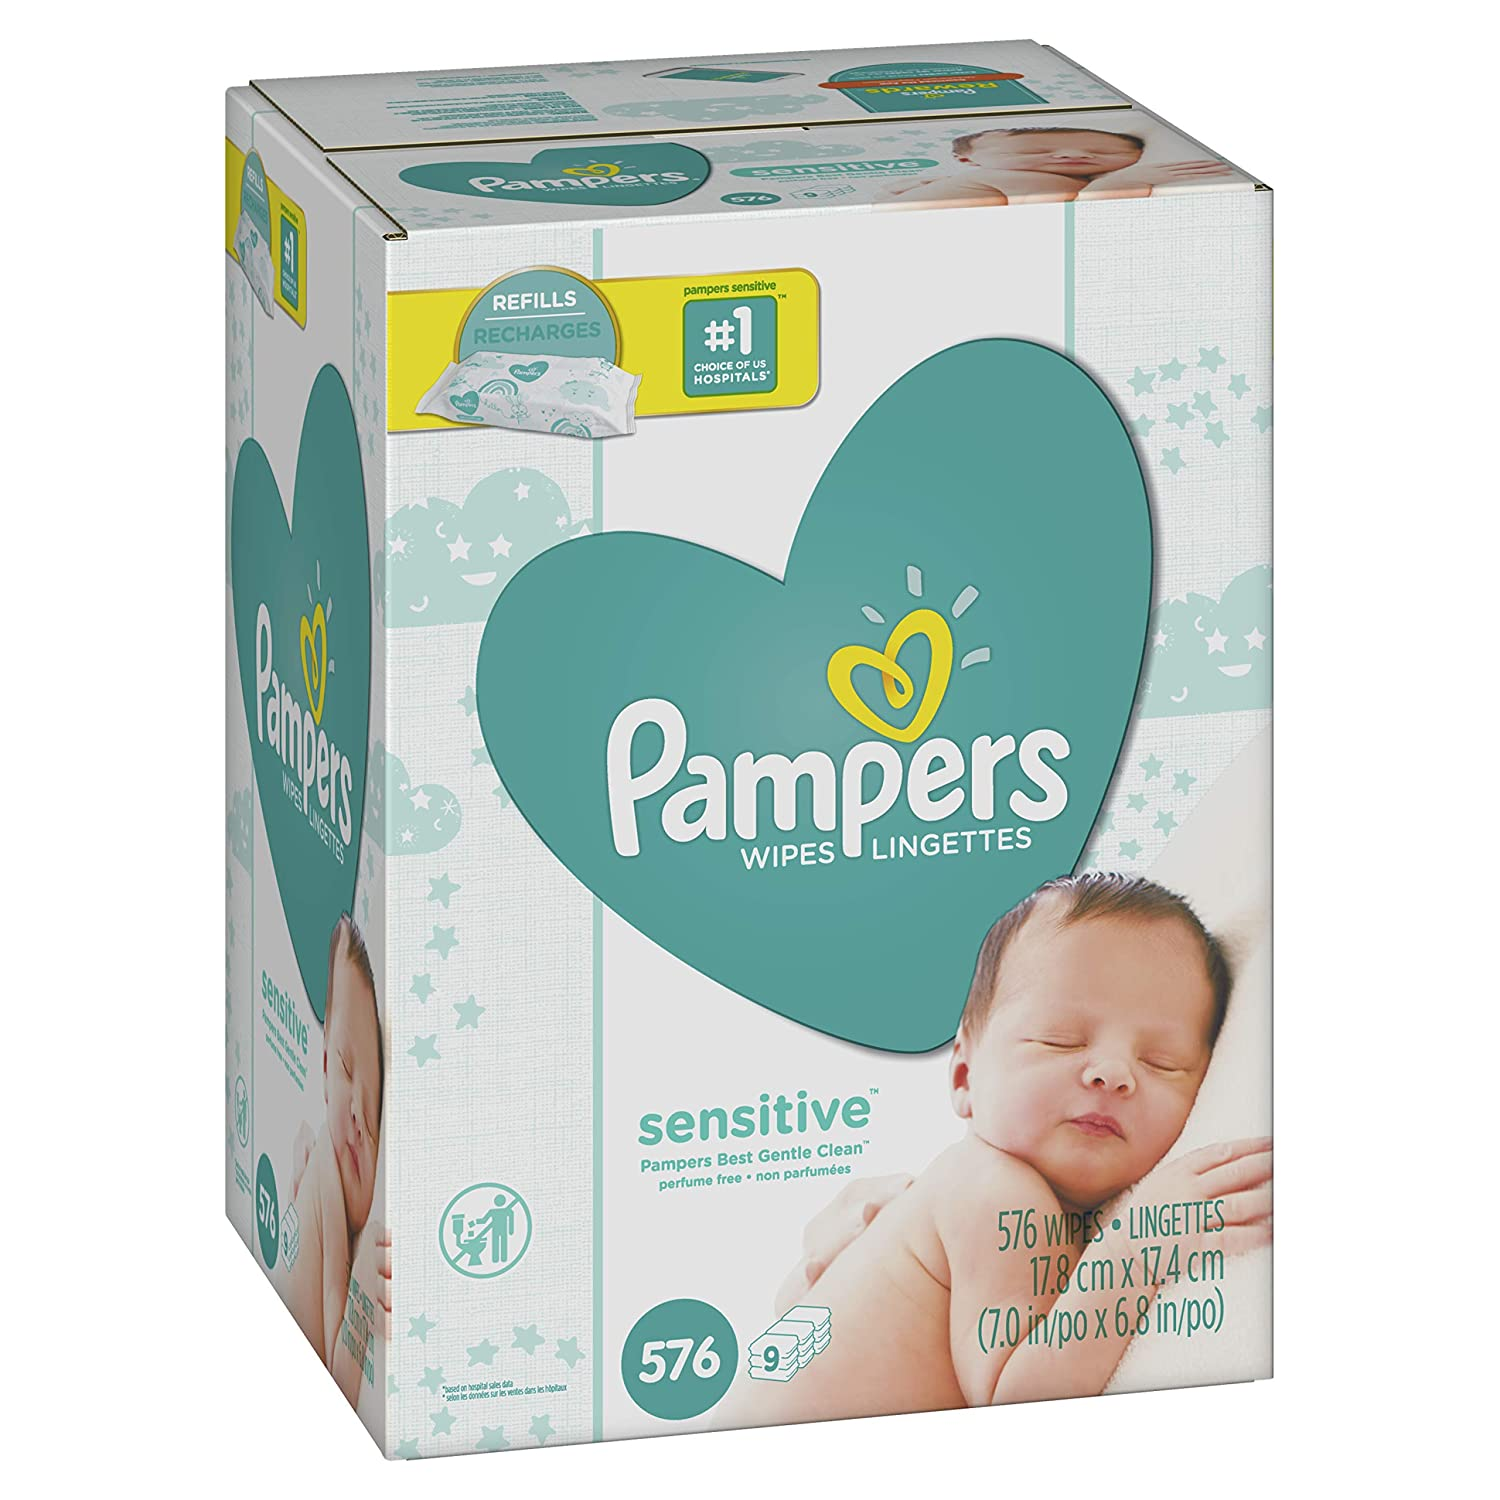 Pampers Sensitive Water-Based Baby Diaper Wipes, 9 Refill Packs for Dispenser Tub - Hypoallergenic and Unscented - 576 Count Procter & Gamble 00037000885290